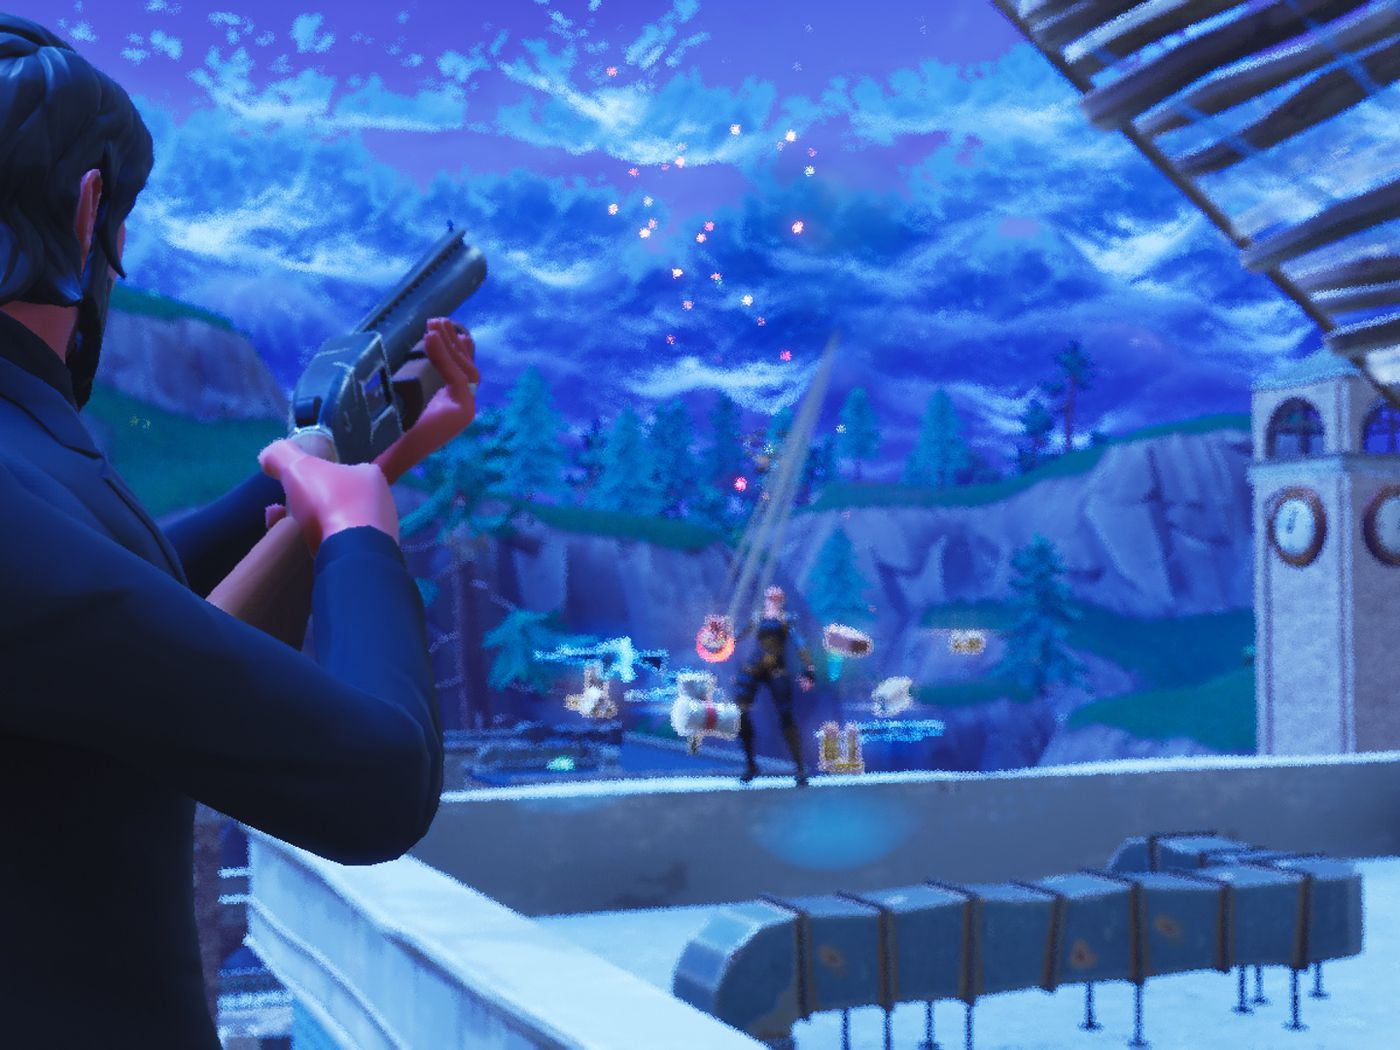 Fortnite's corrupted replays: Epic explains problem, says